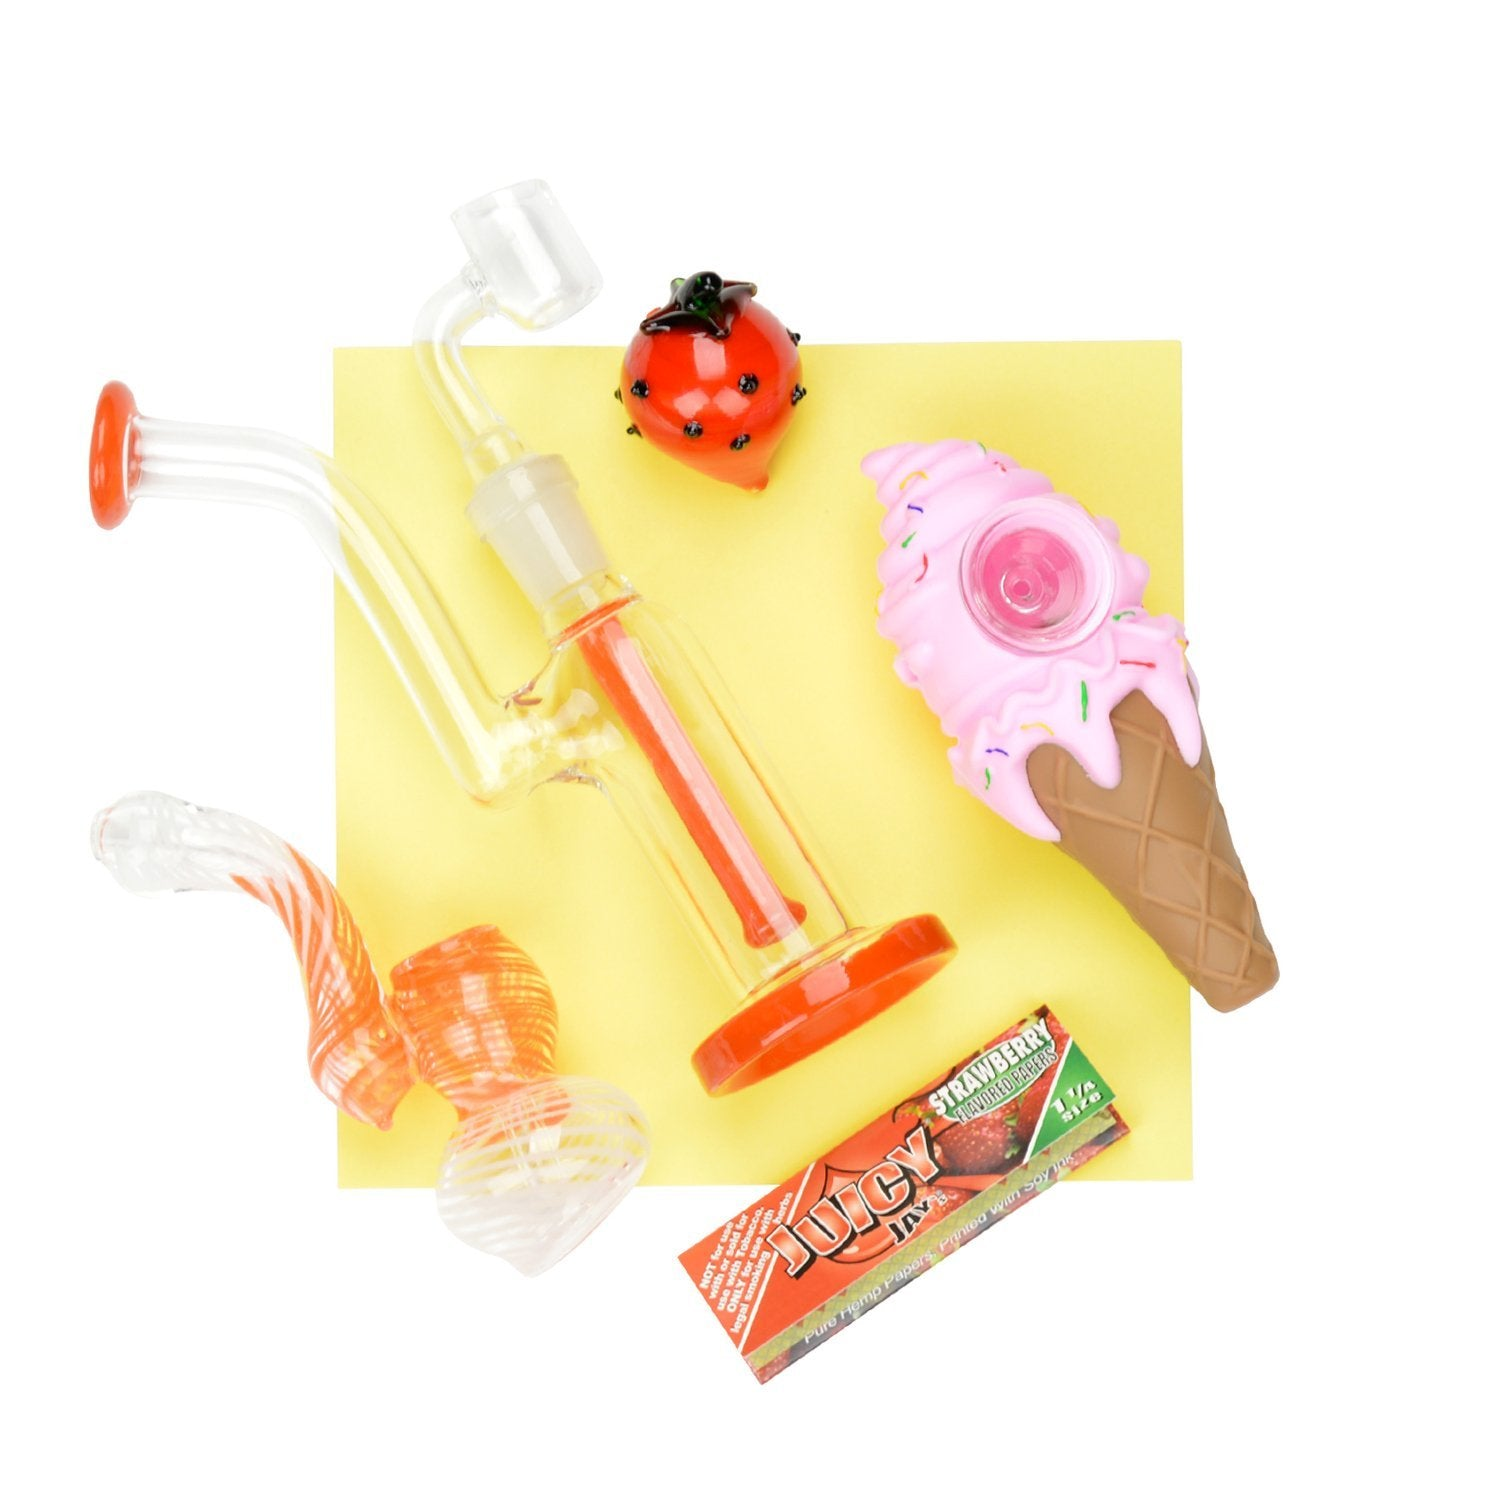 Cute set of summer-inspired strawberry themed dab-rig, ice cream cone pipe, bubbler, carb cap, flavored hemp wraps